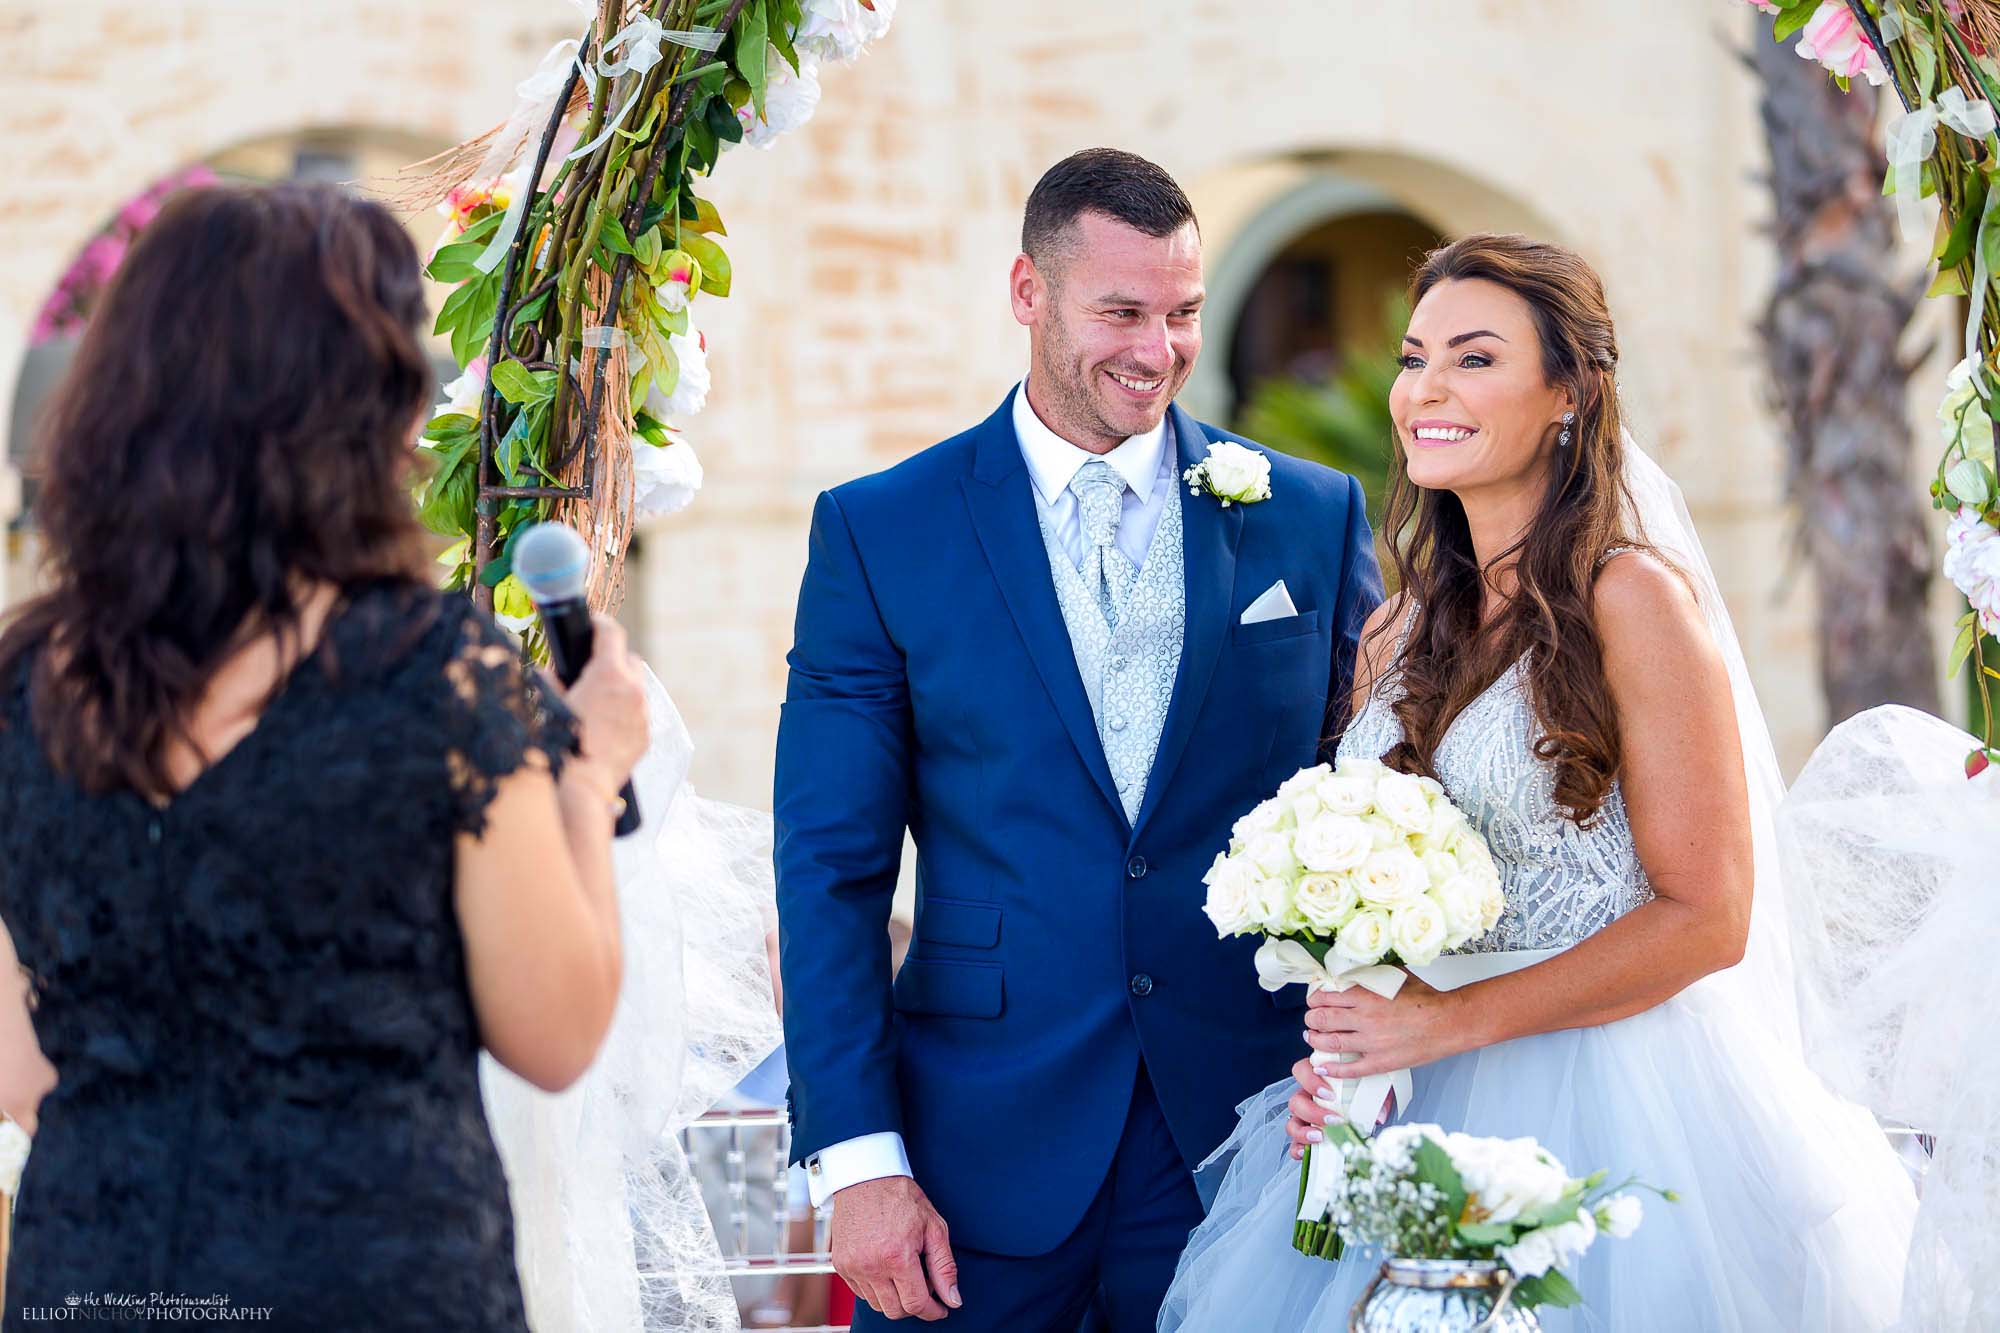 Bride and groom in their blue wedding suit and dress. Wedding photography by Elliot Nichol.